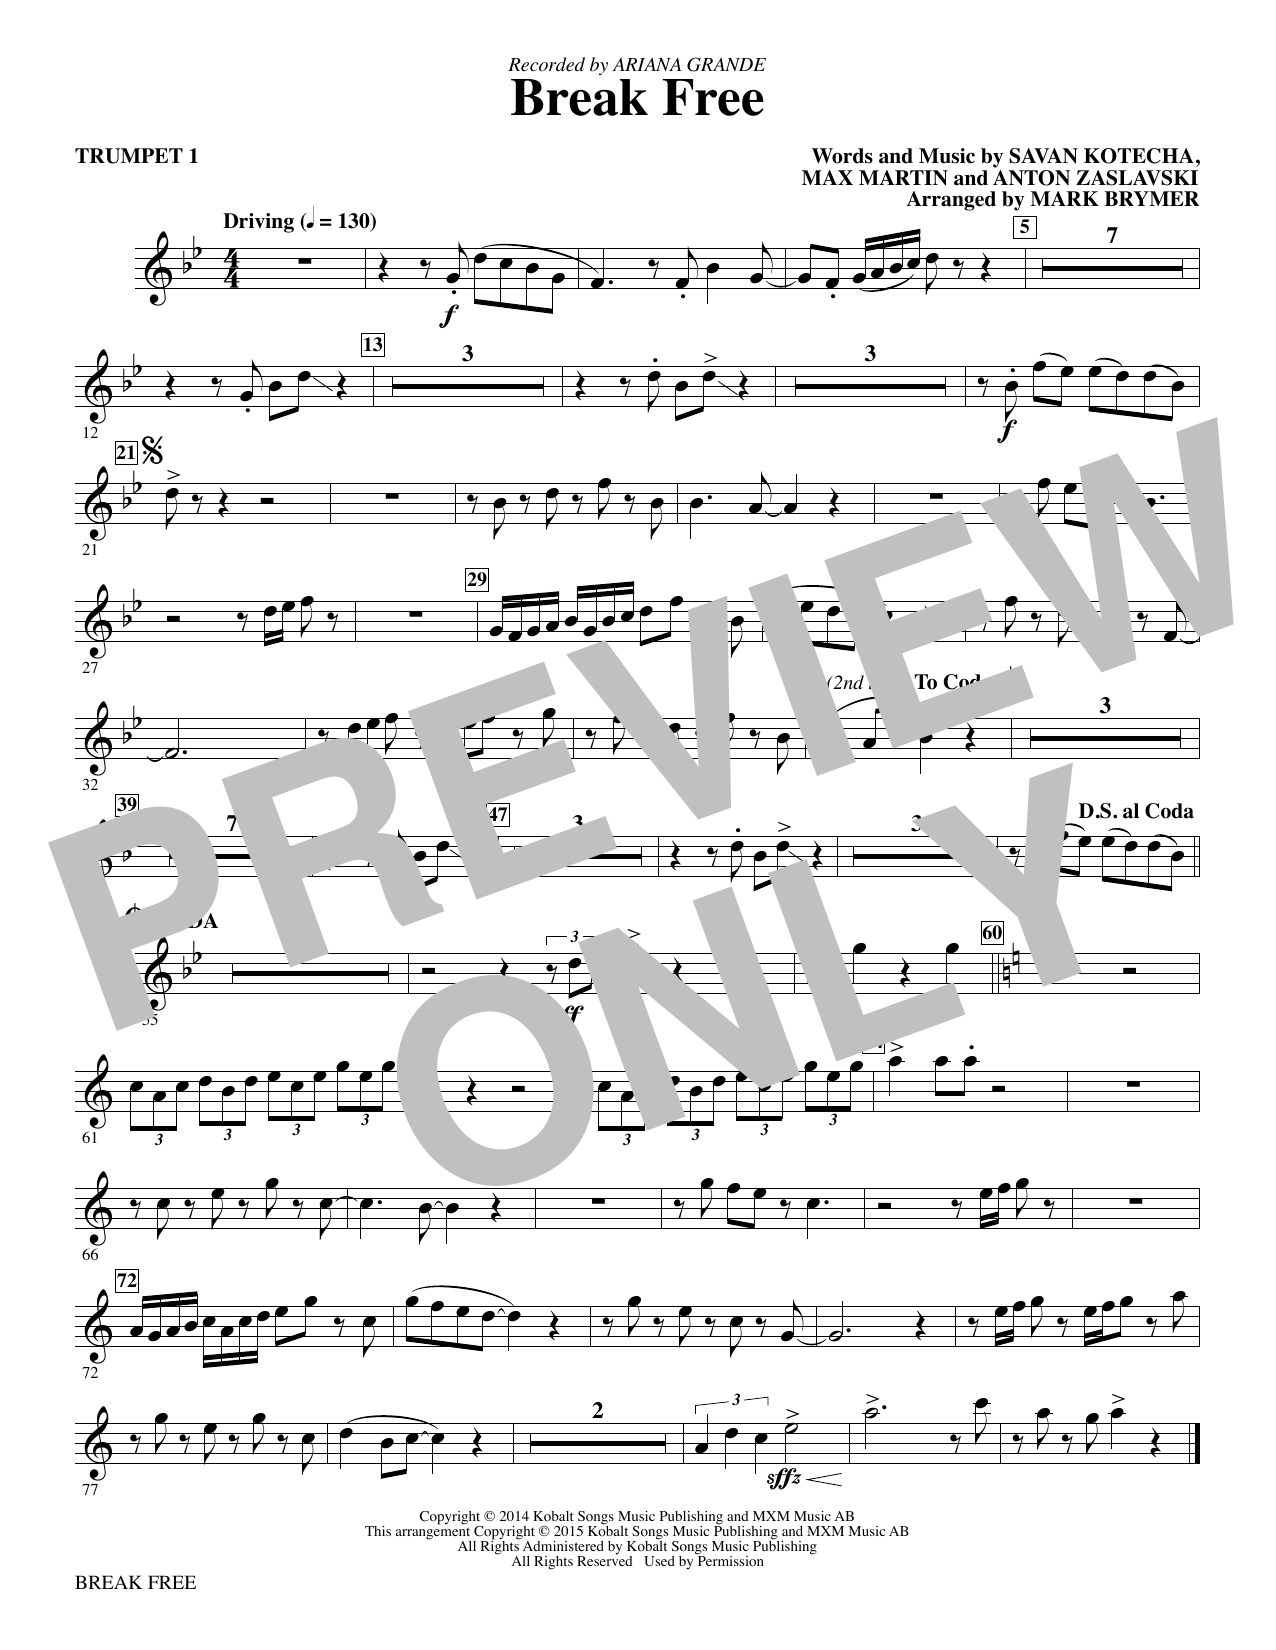 Break Free (complete set of parts) sheet music for orchestra/band by Mark Brymer, Anton Zaslavski, Ariana Grande, Ariana Grande feat. Zedd, Max Martin and Savan Kotecha. Score Image Preview.